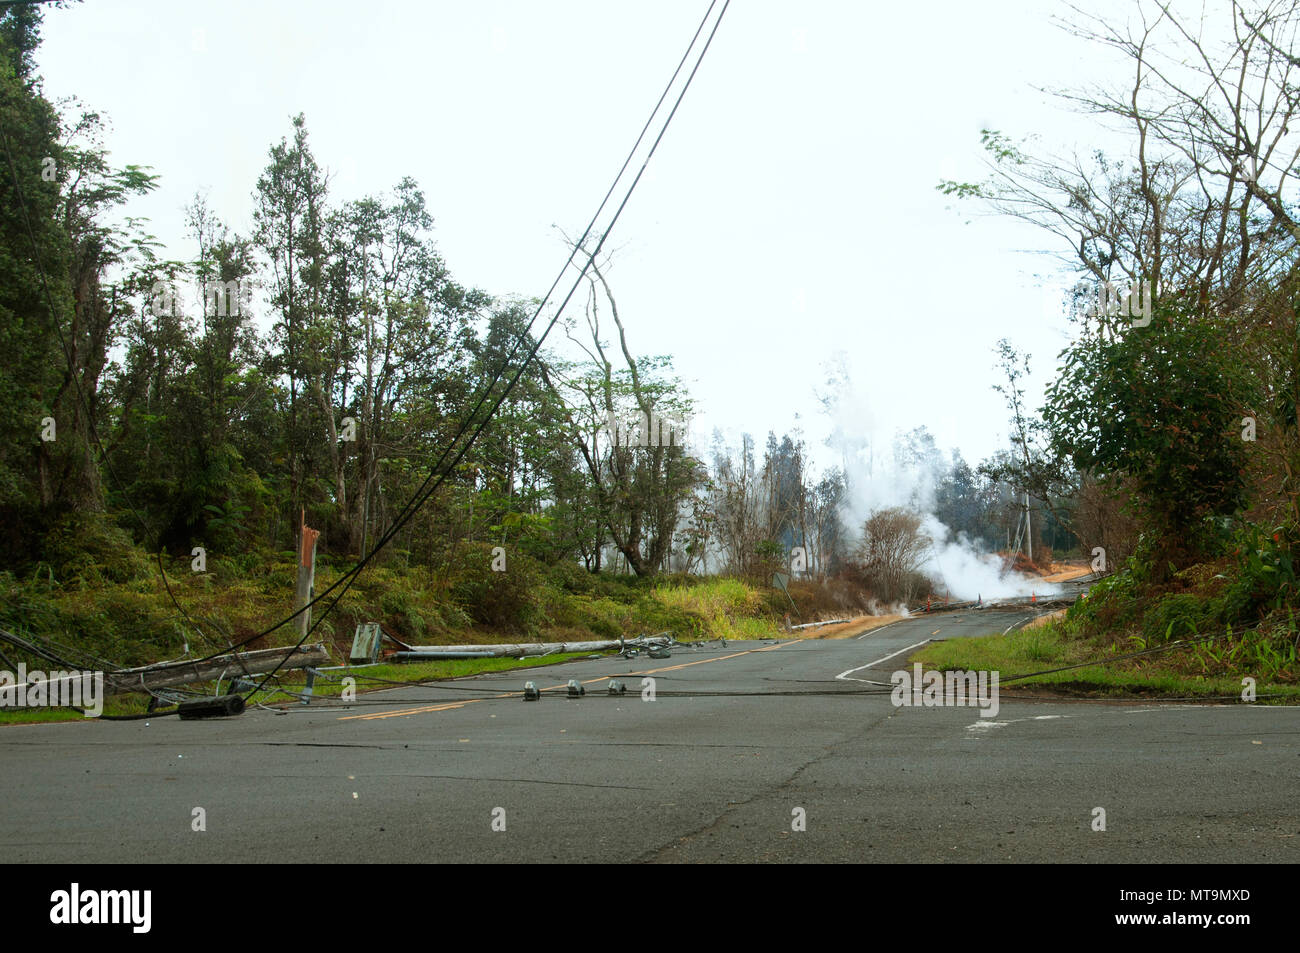 Damaged telephone lines littered residential roads in Leilani estates May 16, 2018, on Hawaii Island. The telephone lines had fallen after they suffered damage during volcanic activity on the island.  (U.S. Air National Guard photo by Tech. Sgt. Alison Bruce-Maldonado) - Stock Image